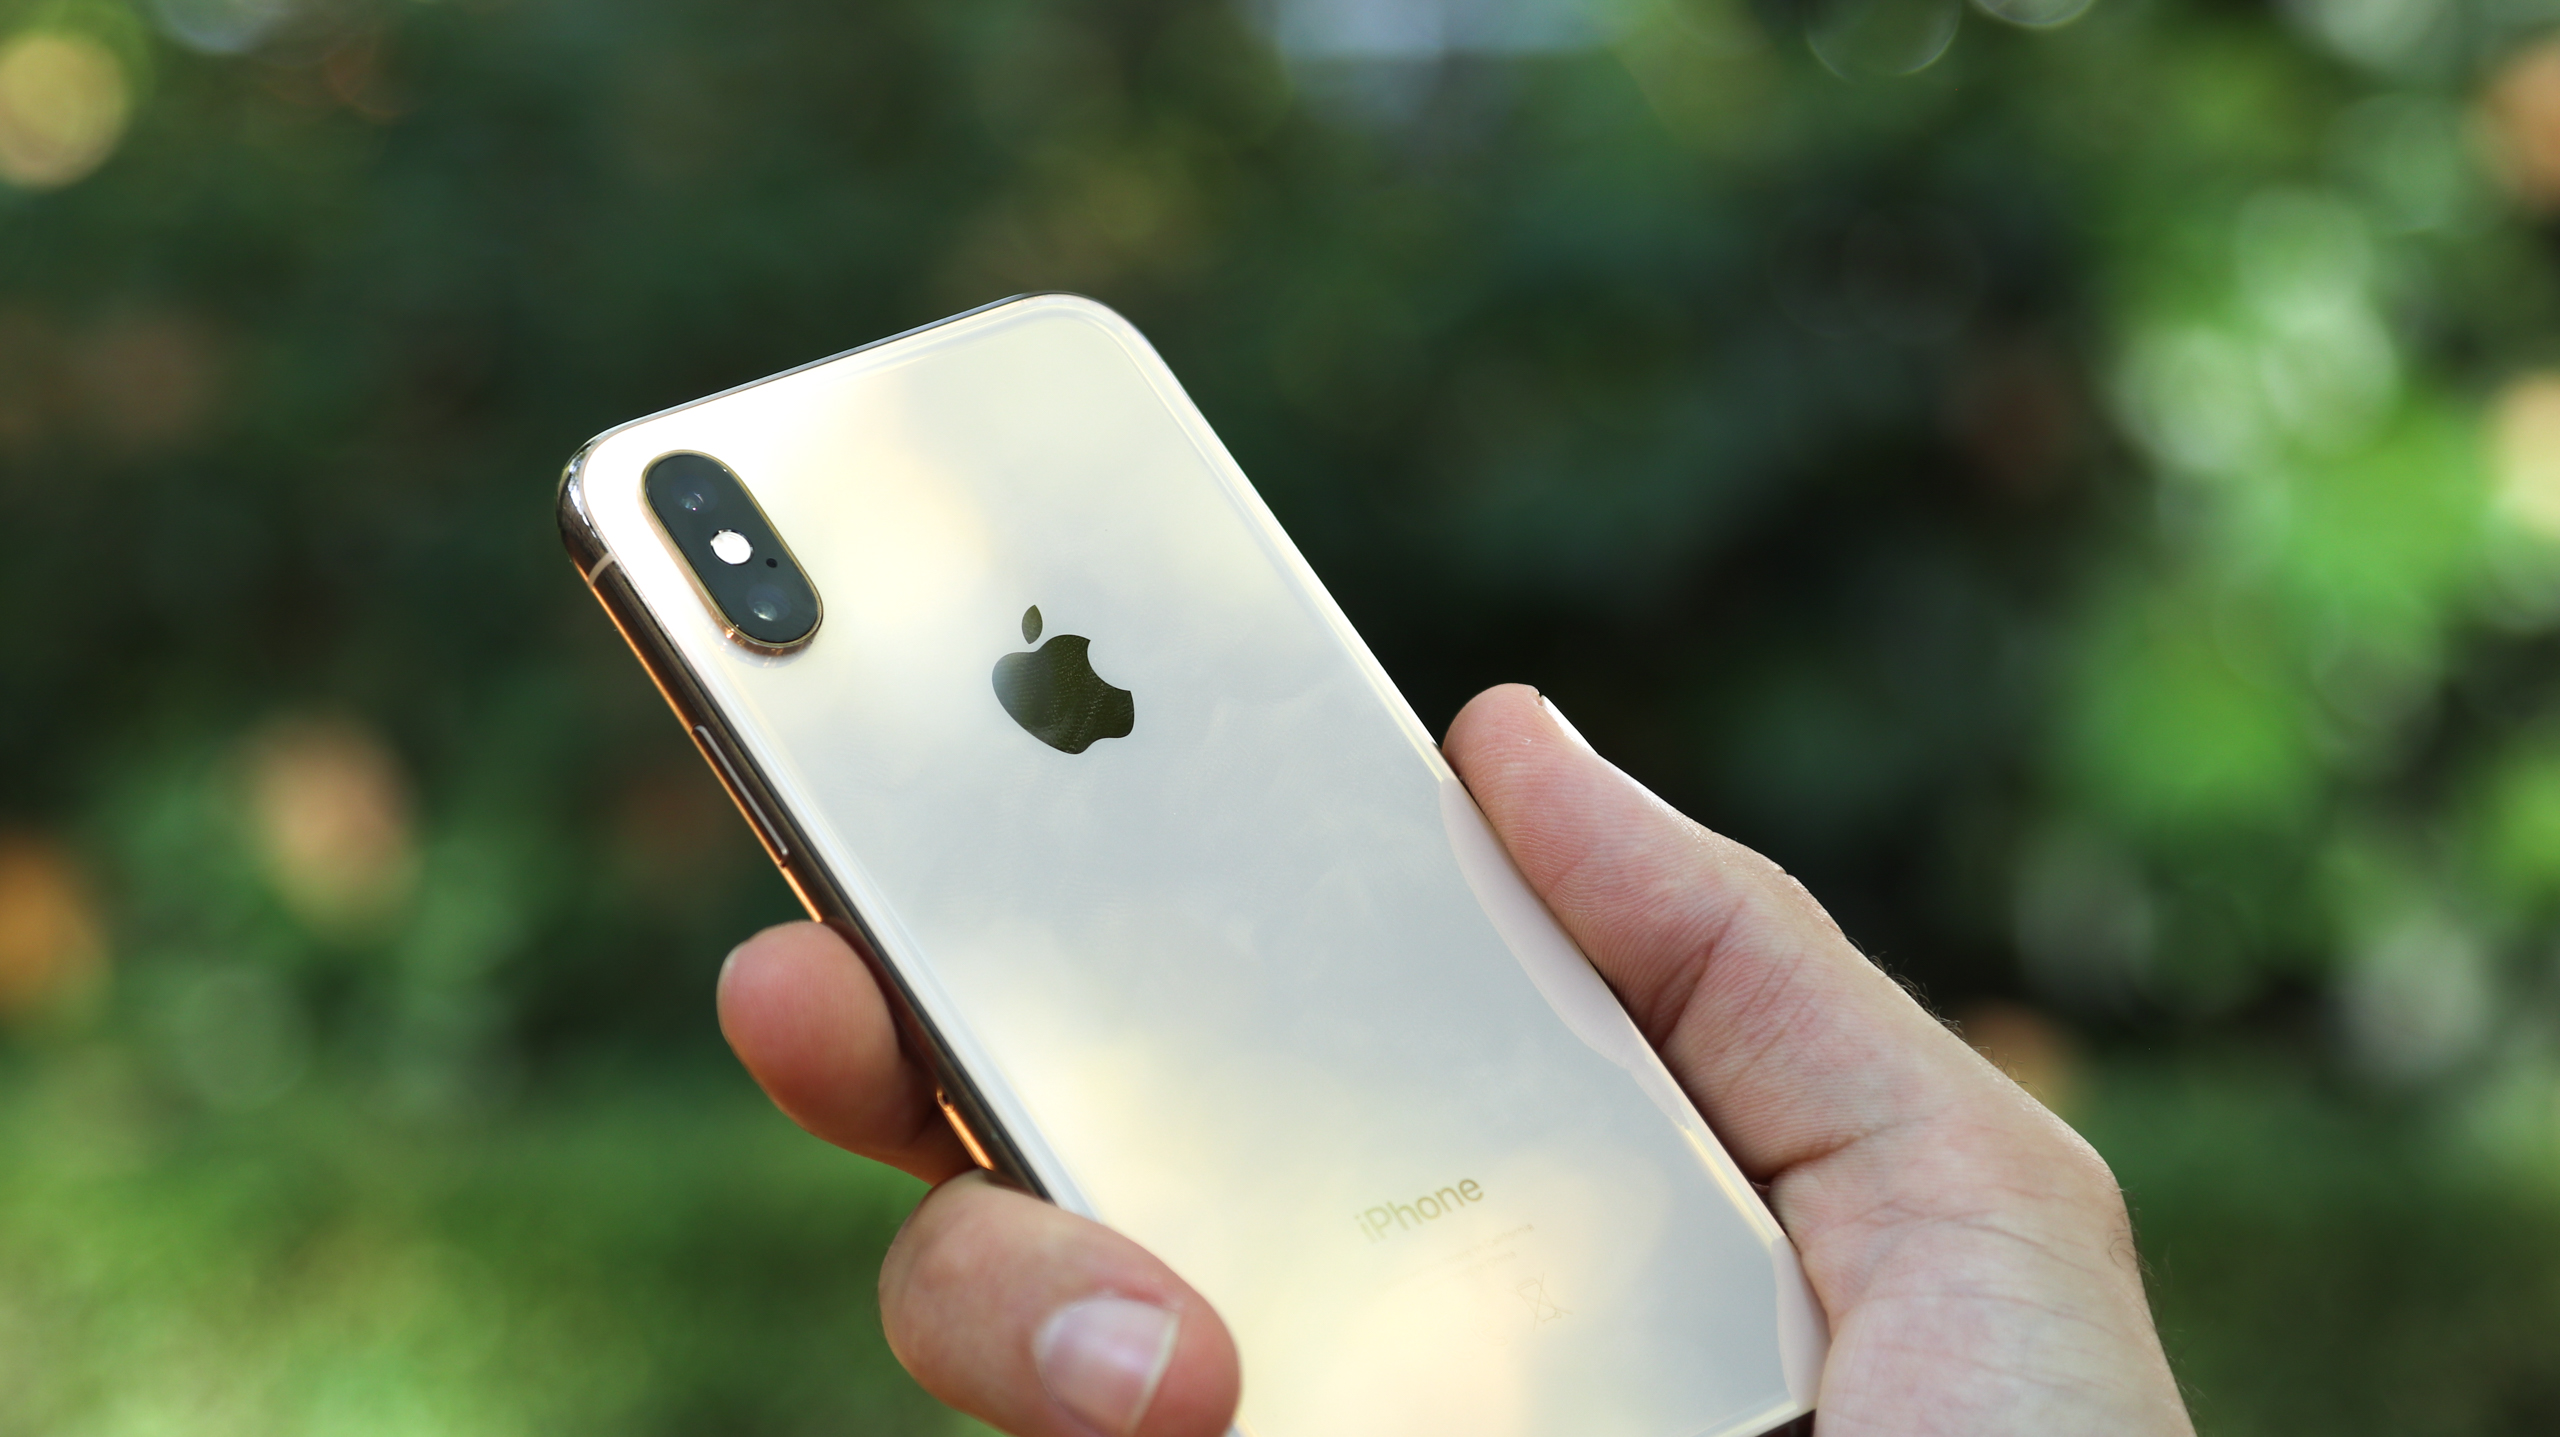 Почему лучше купить iphone 11 вместо iphone 11 pro или 11 pro max: 9 причин | новости apple. все о mac, iphone, ipad, ios, macos и apple tv